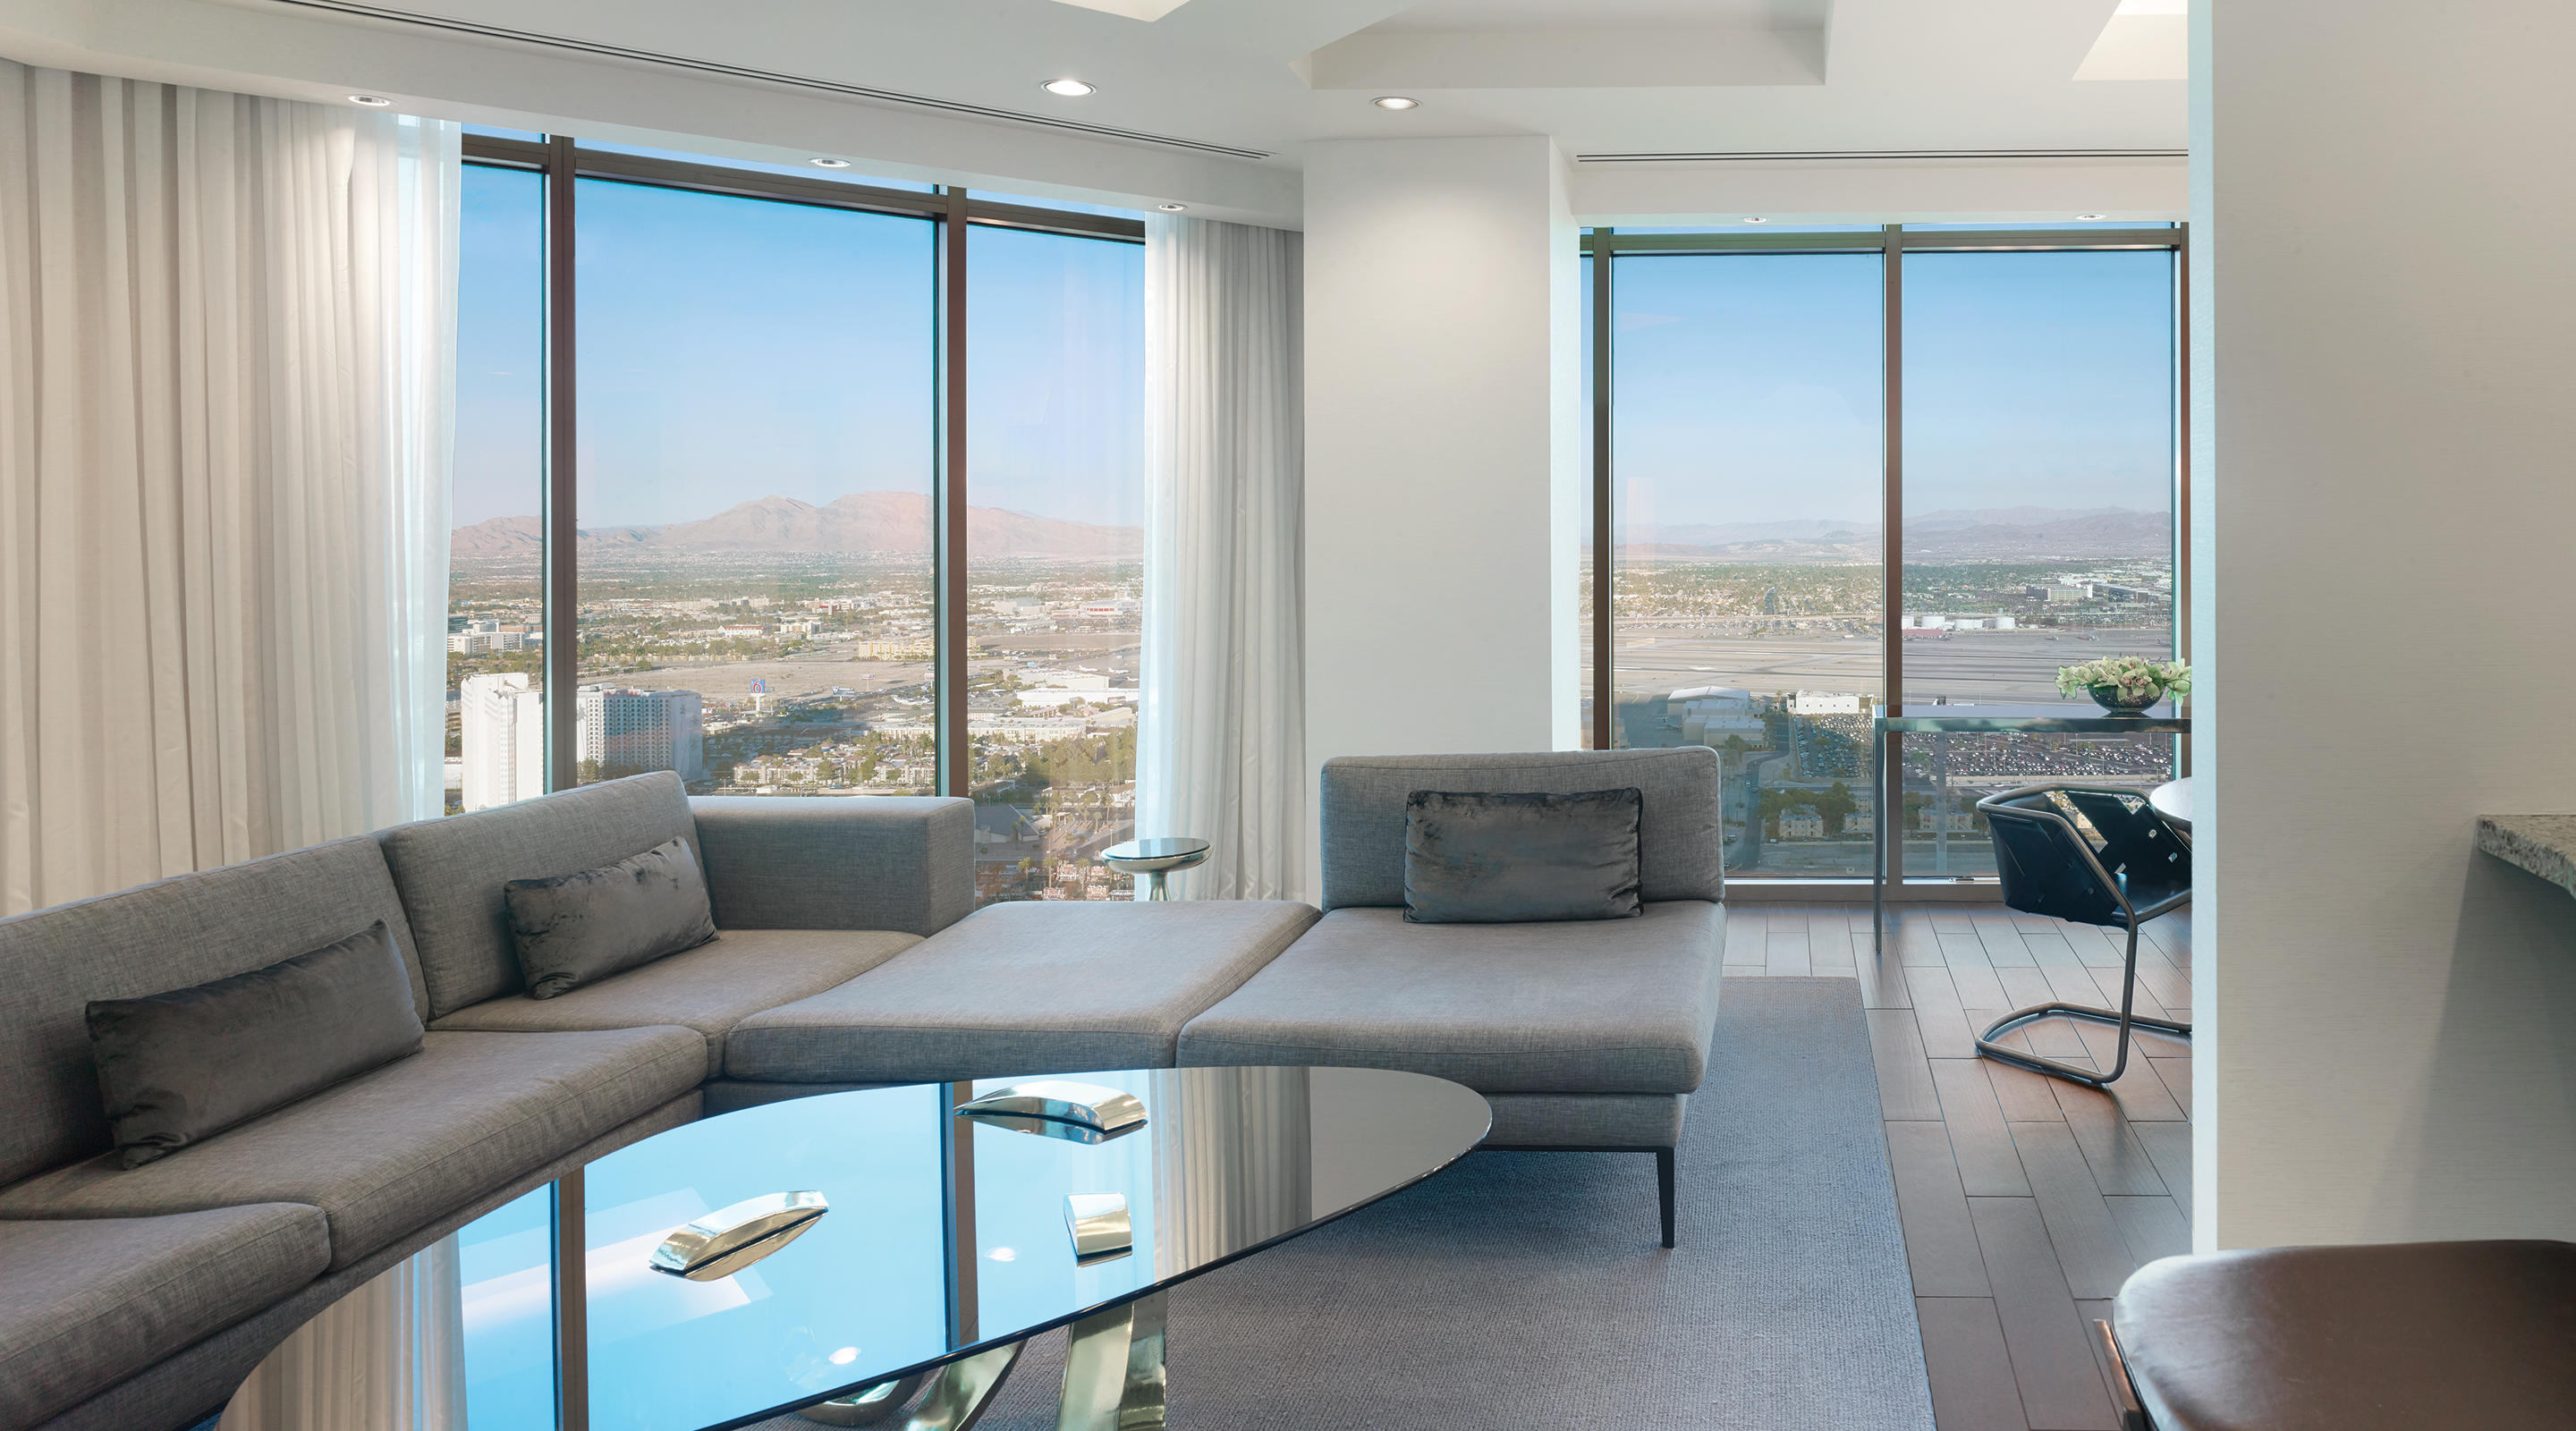 Delano Las Vegas Penthouse Panoramic View Living Room with Mountain View